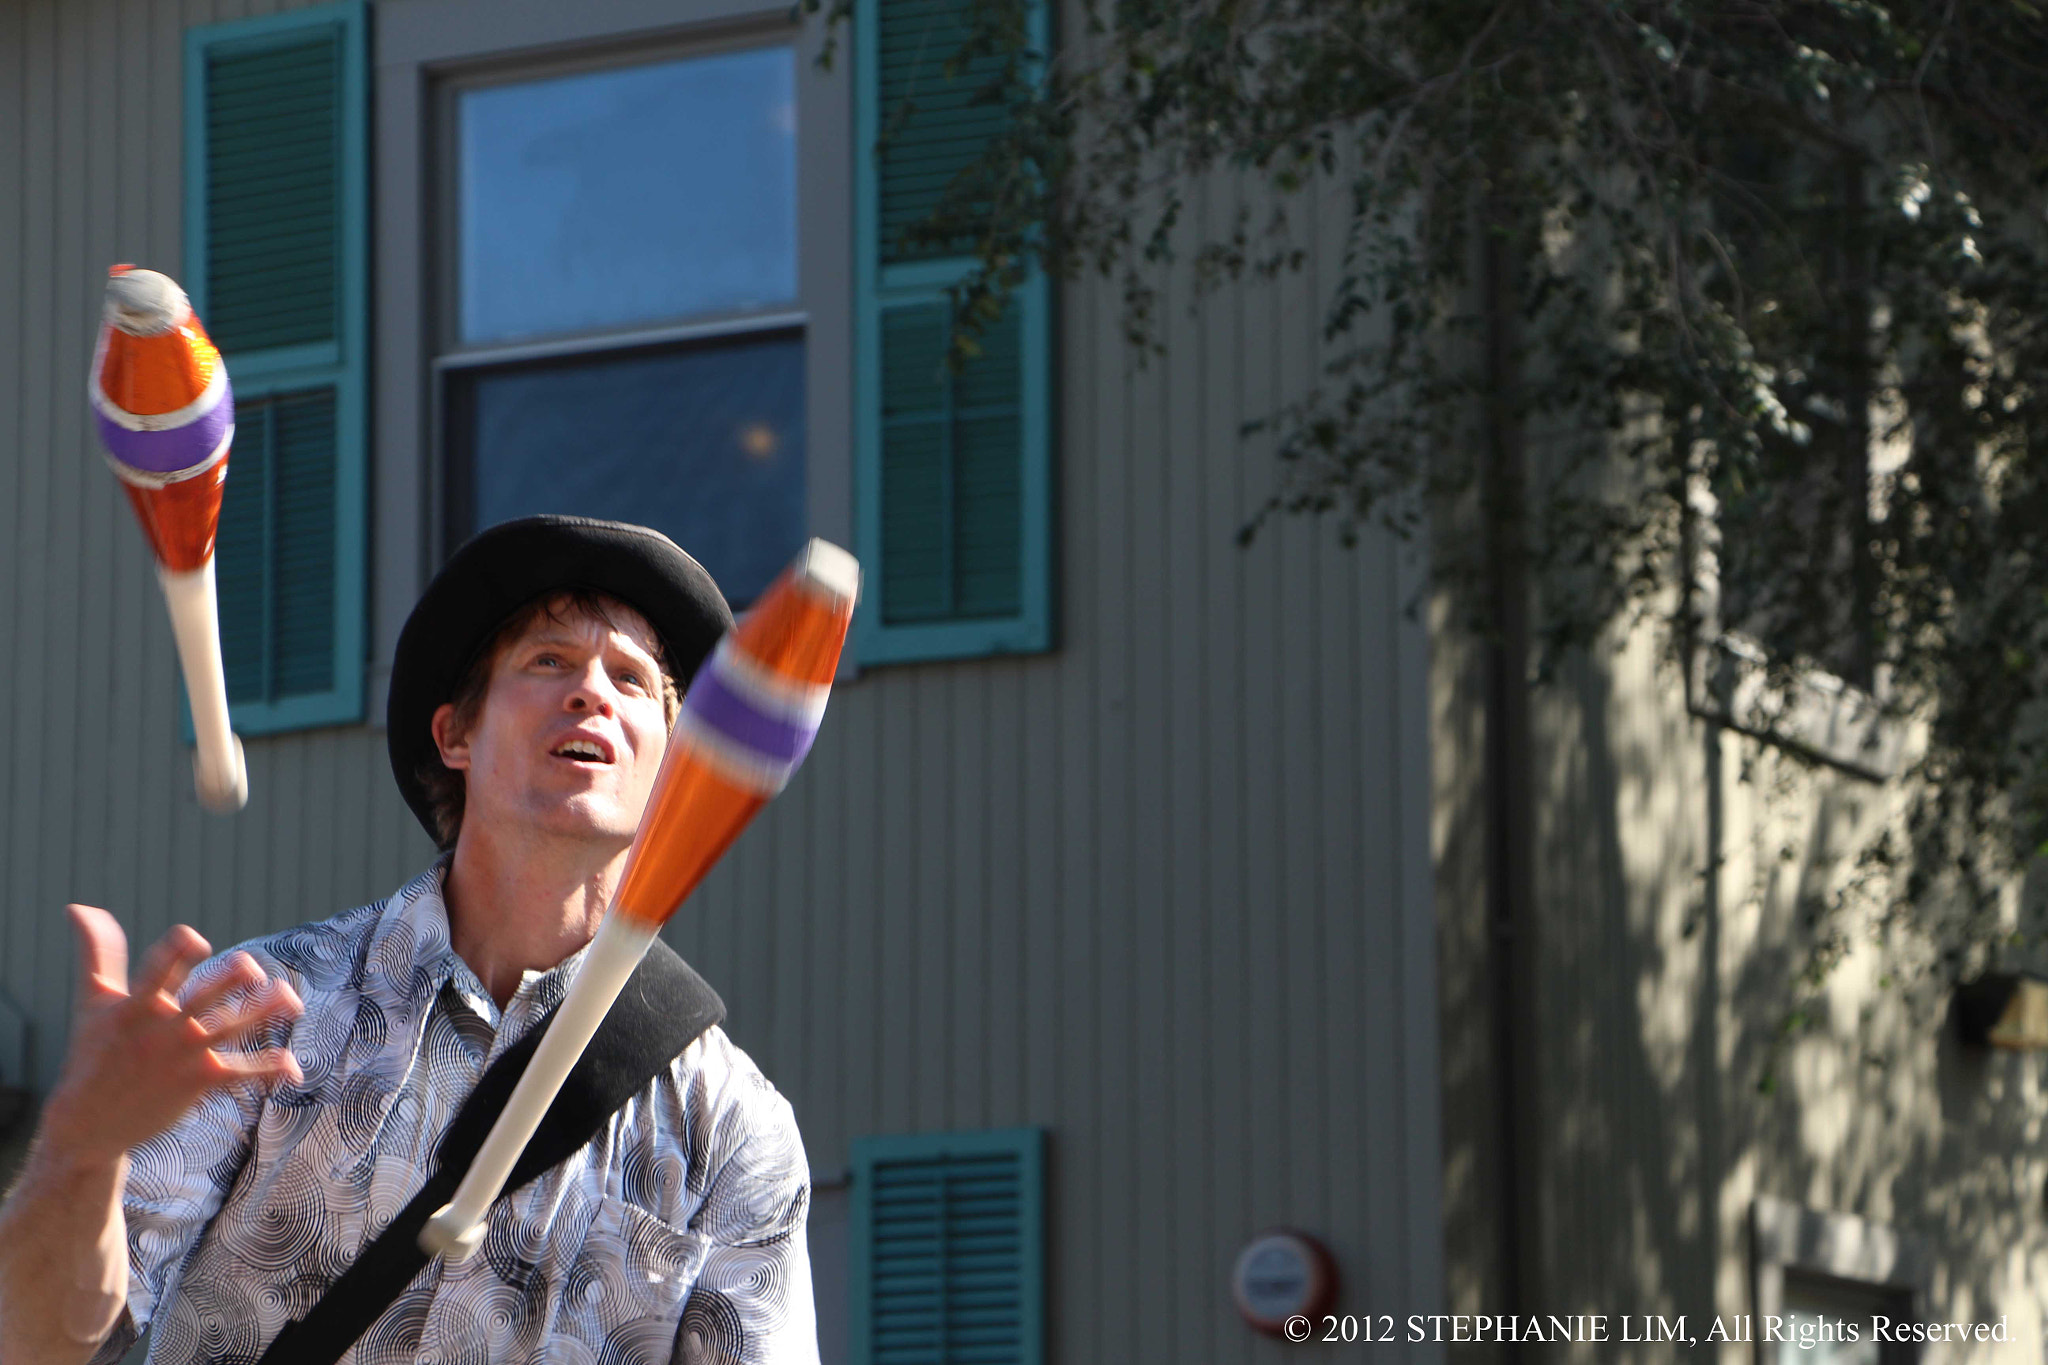 Photograph Busker juggler by Stephanie Lim on 500px